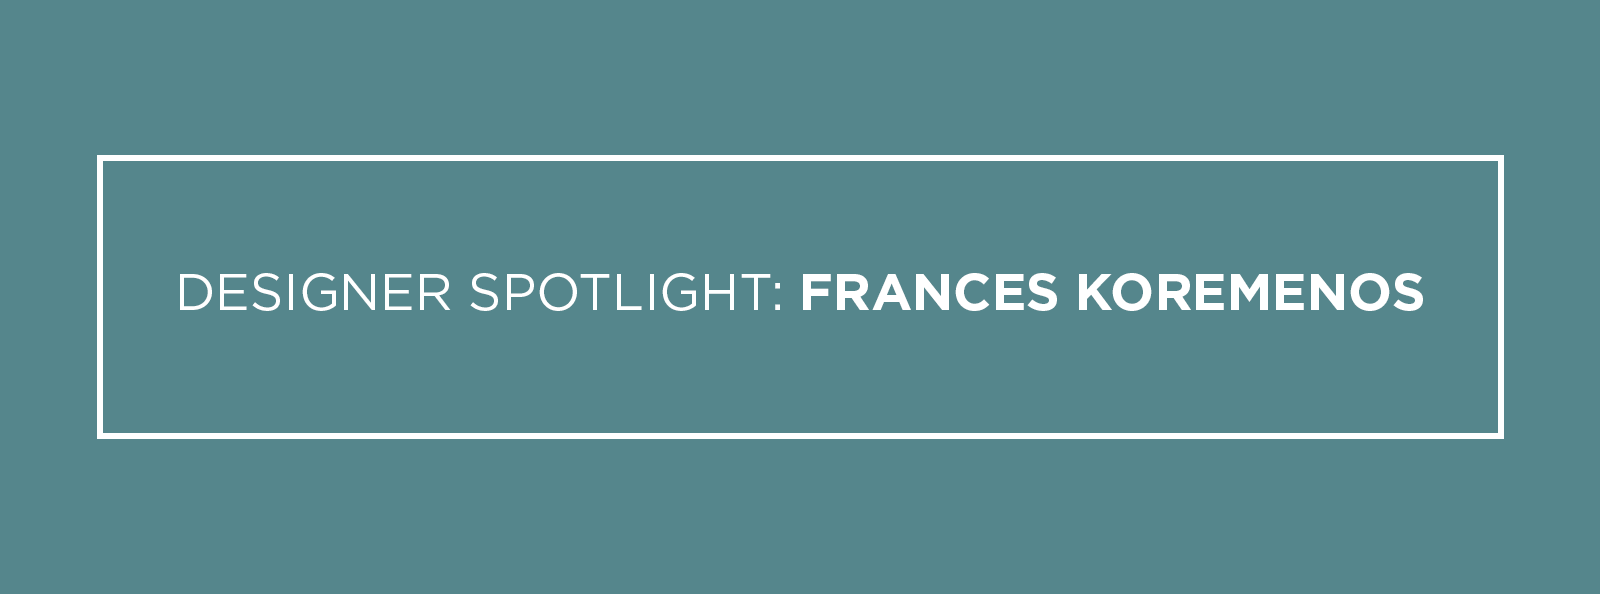 Designer Spotlight Frances Koremenos